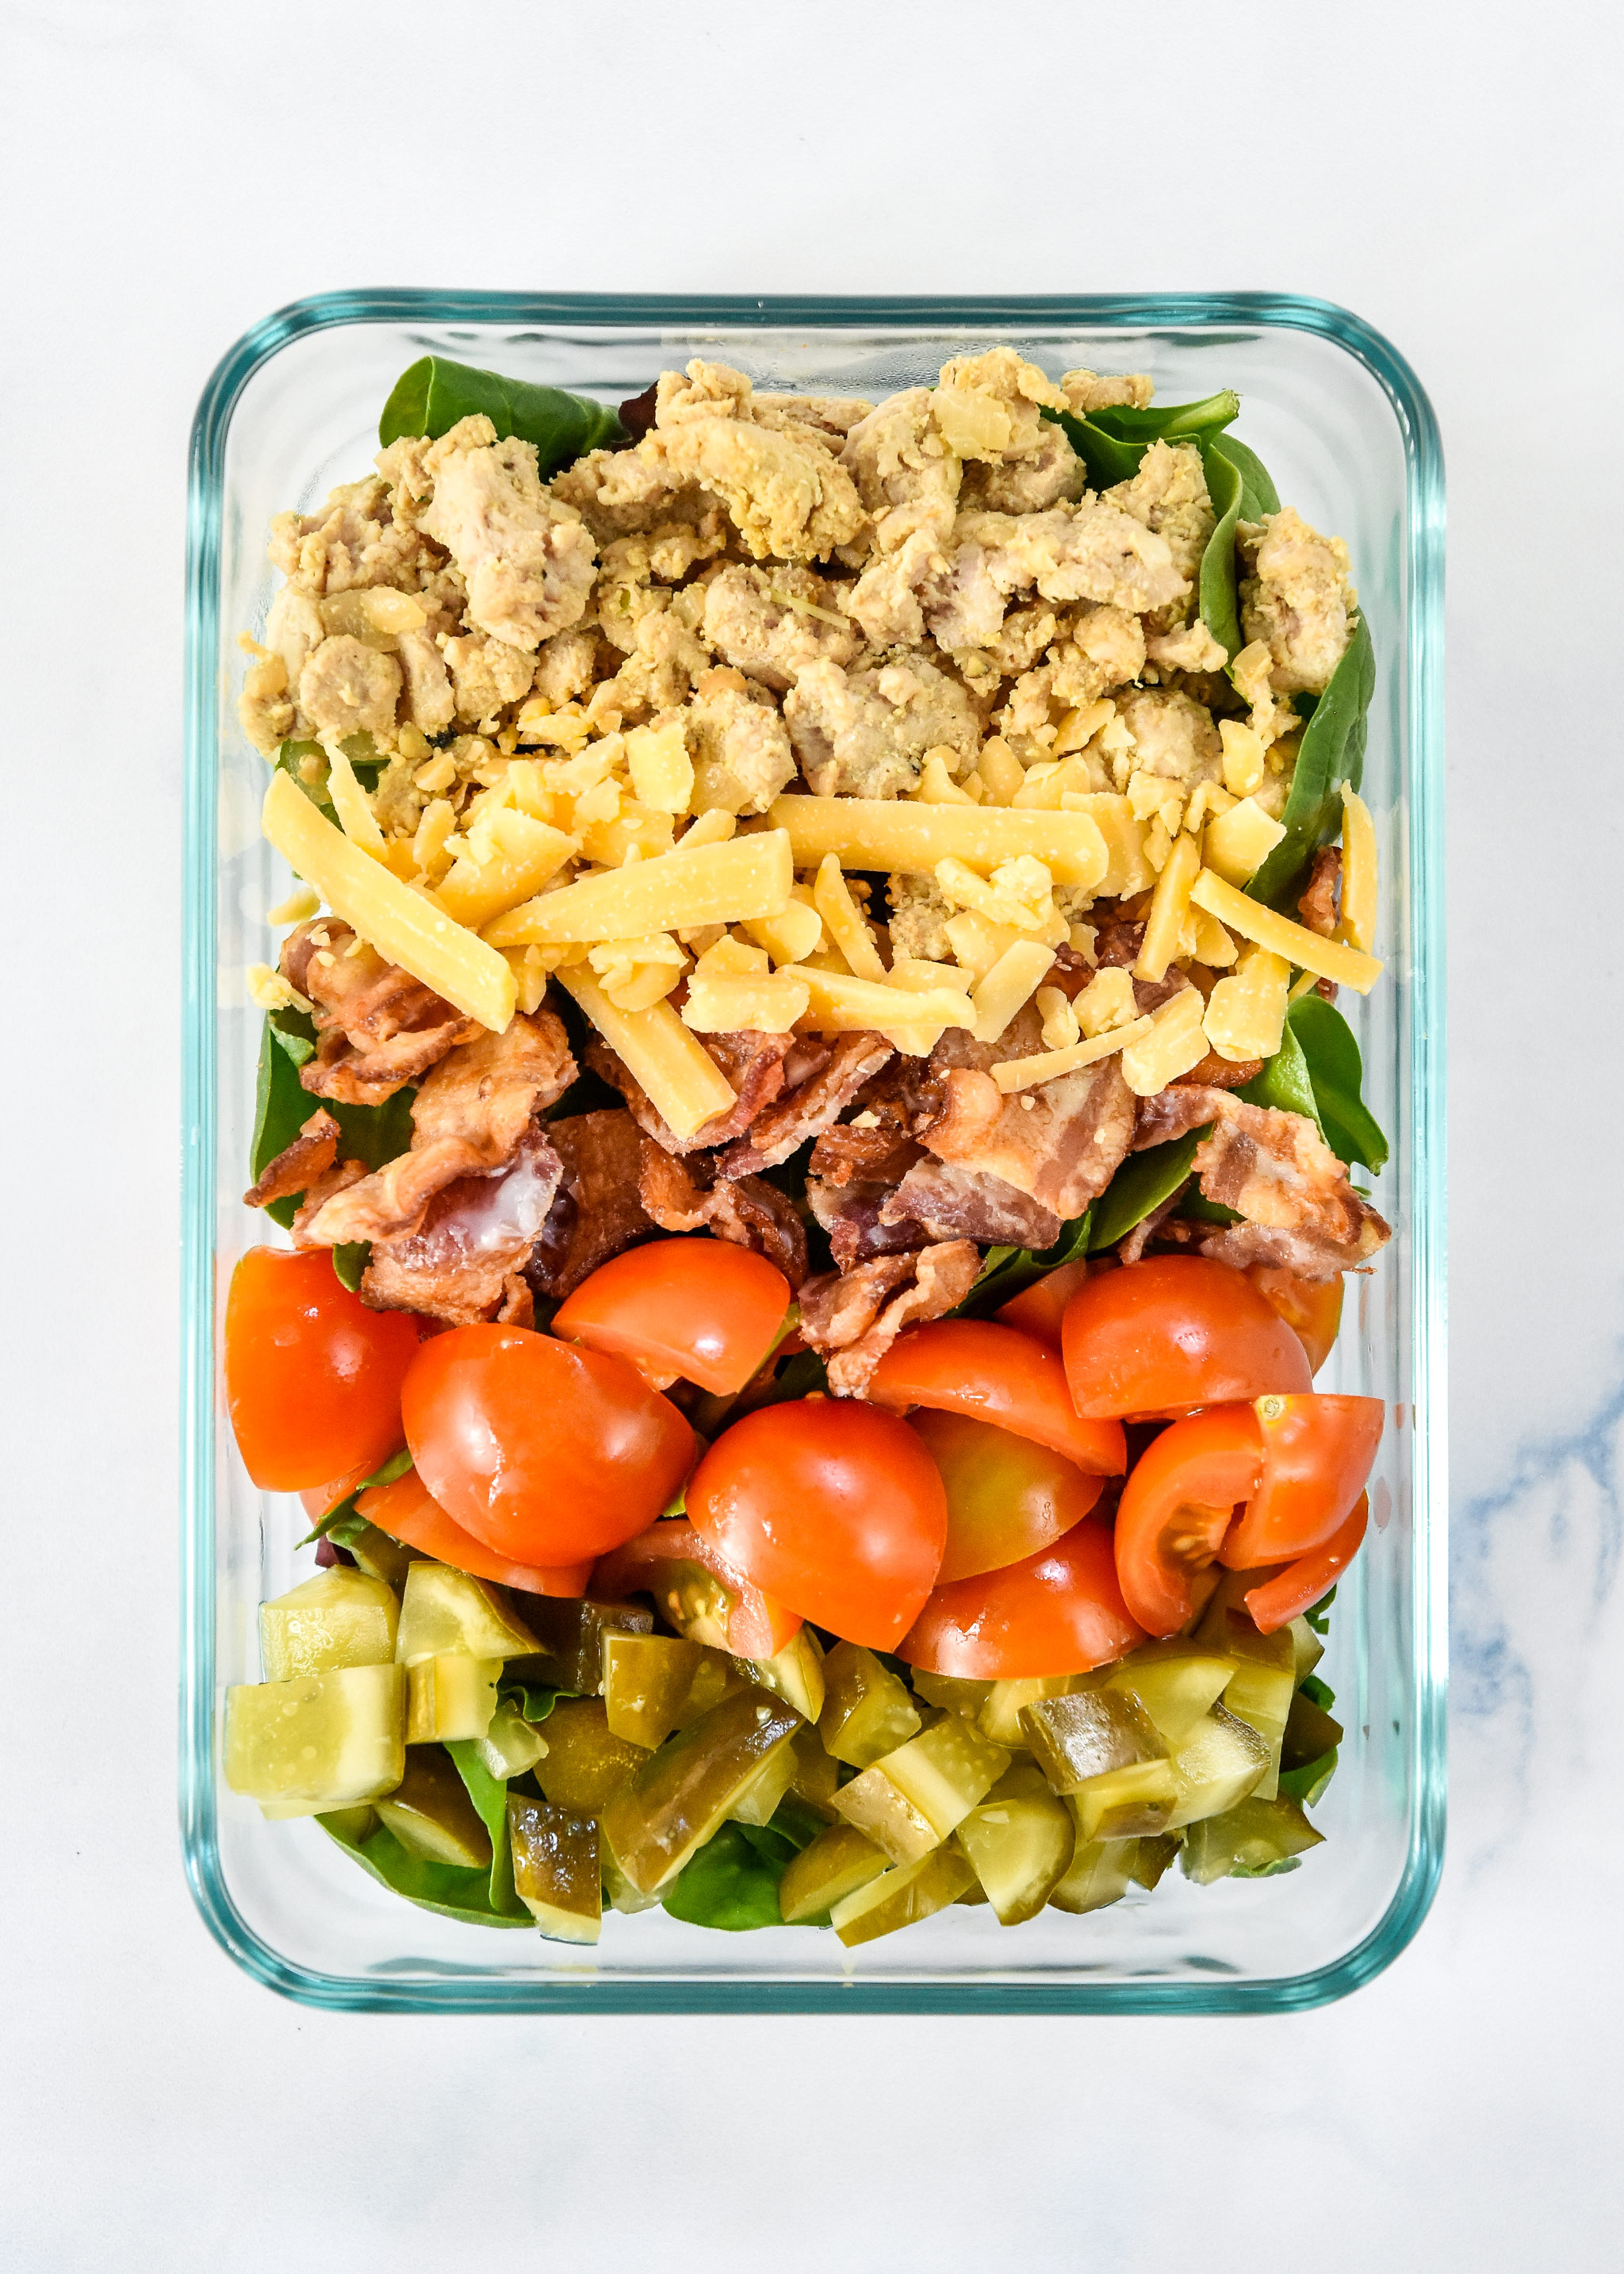 loaded ground turkey burger salad in a glass meal prep bowl.